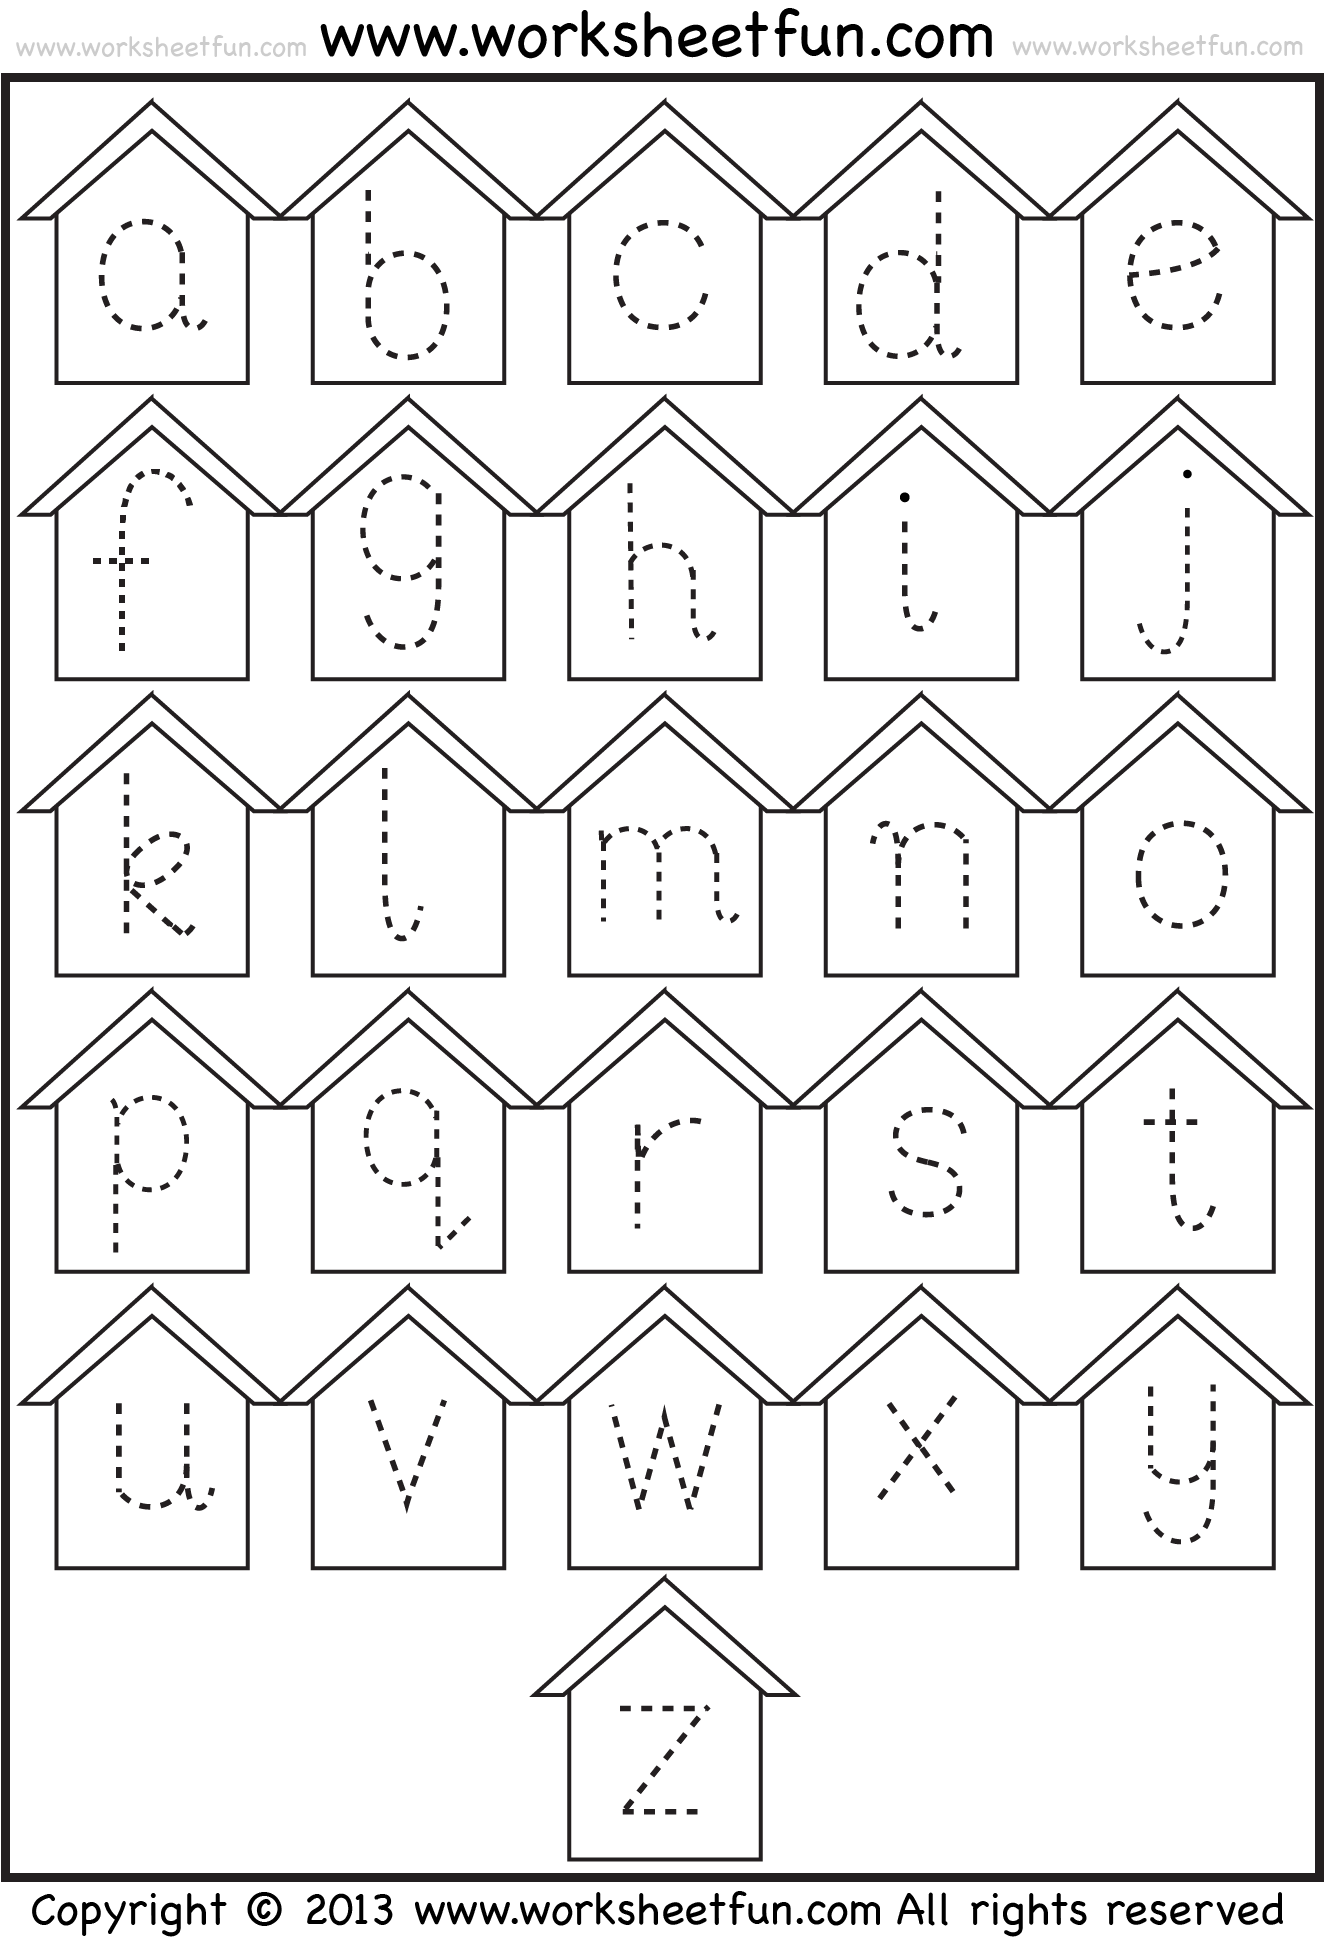 small letter tracing tracing pinterest letter tracing small letters and worksheets. Black Bedroom Furniture Sets. Home Design Ideas